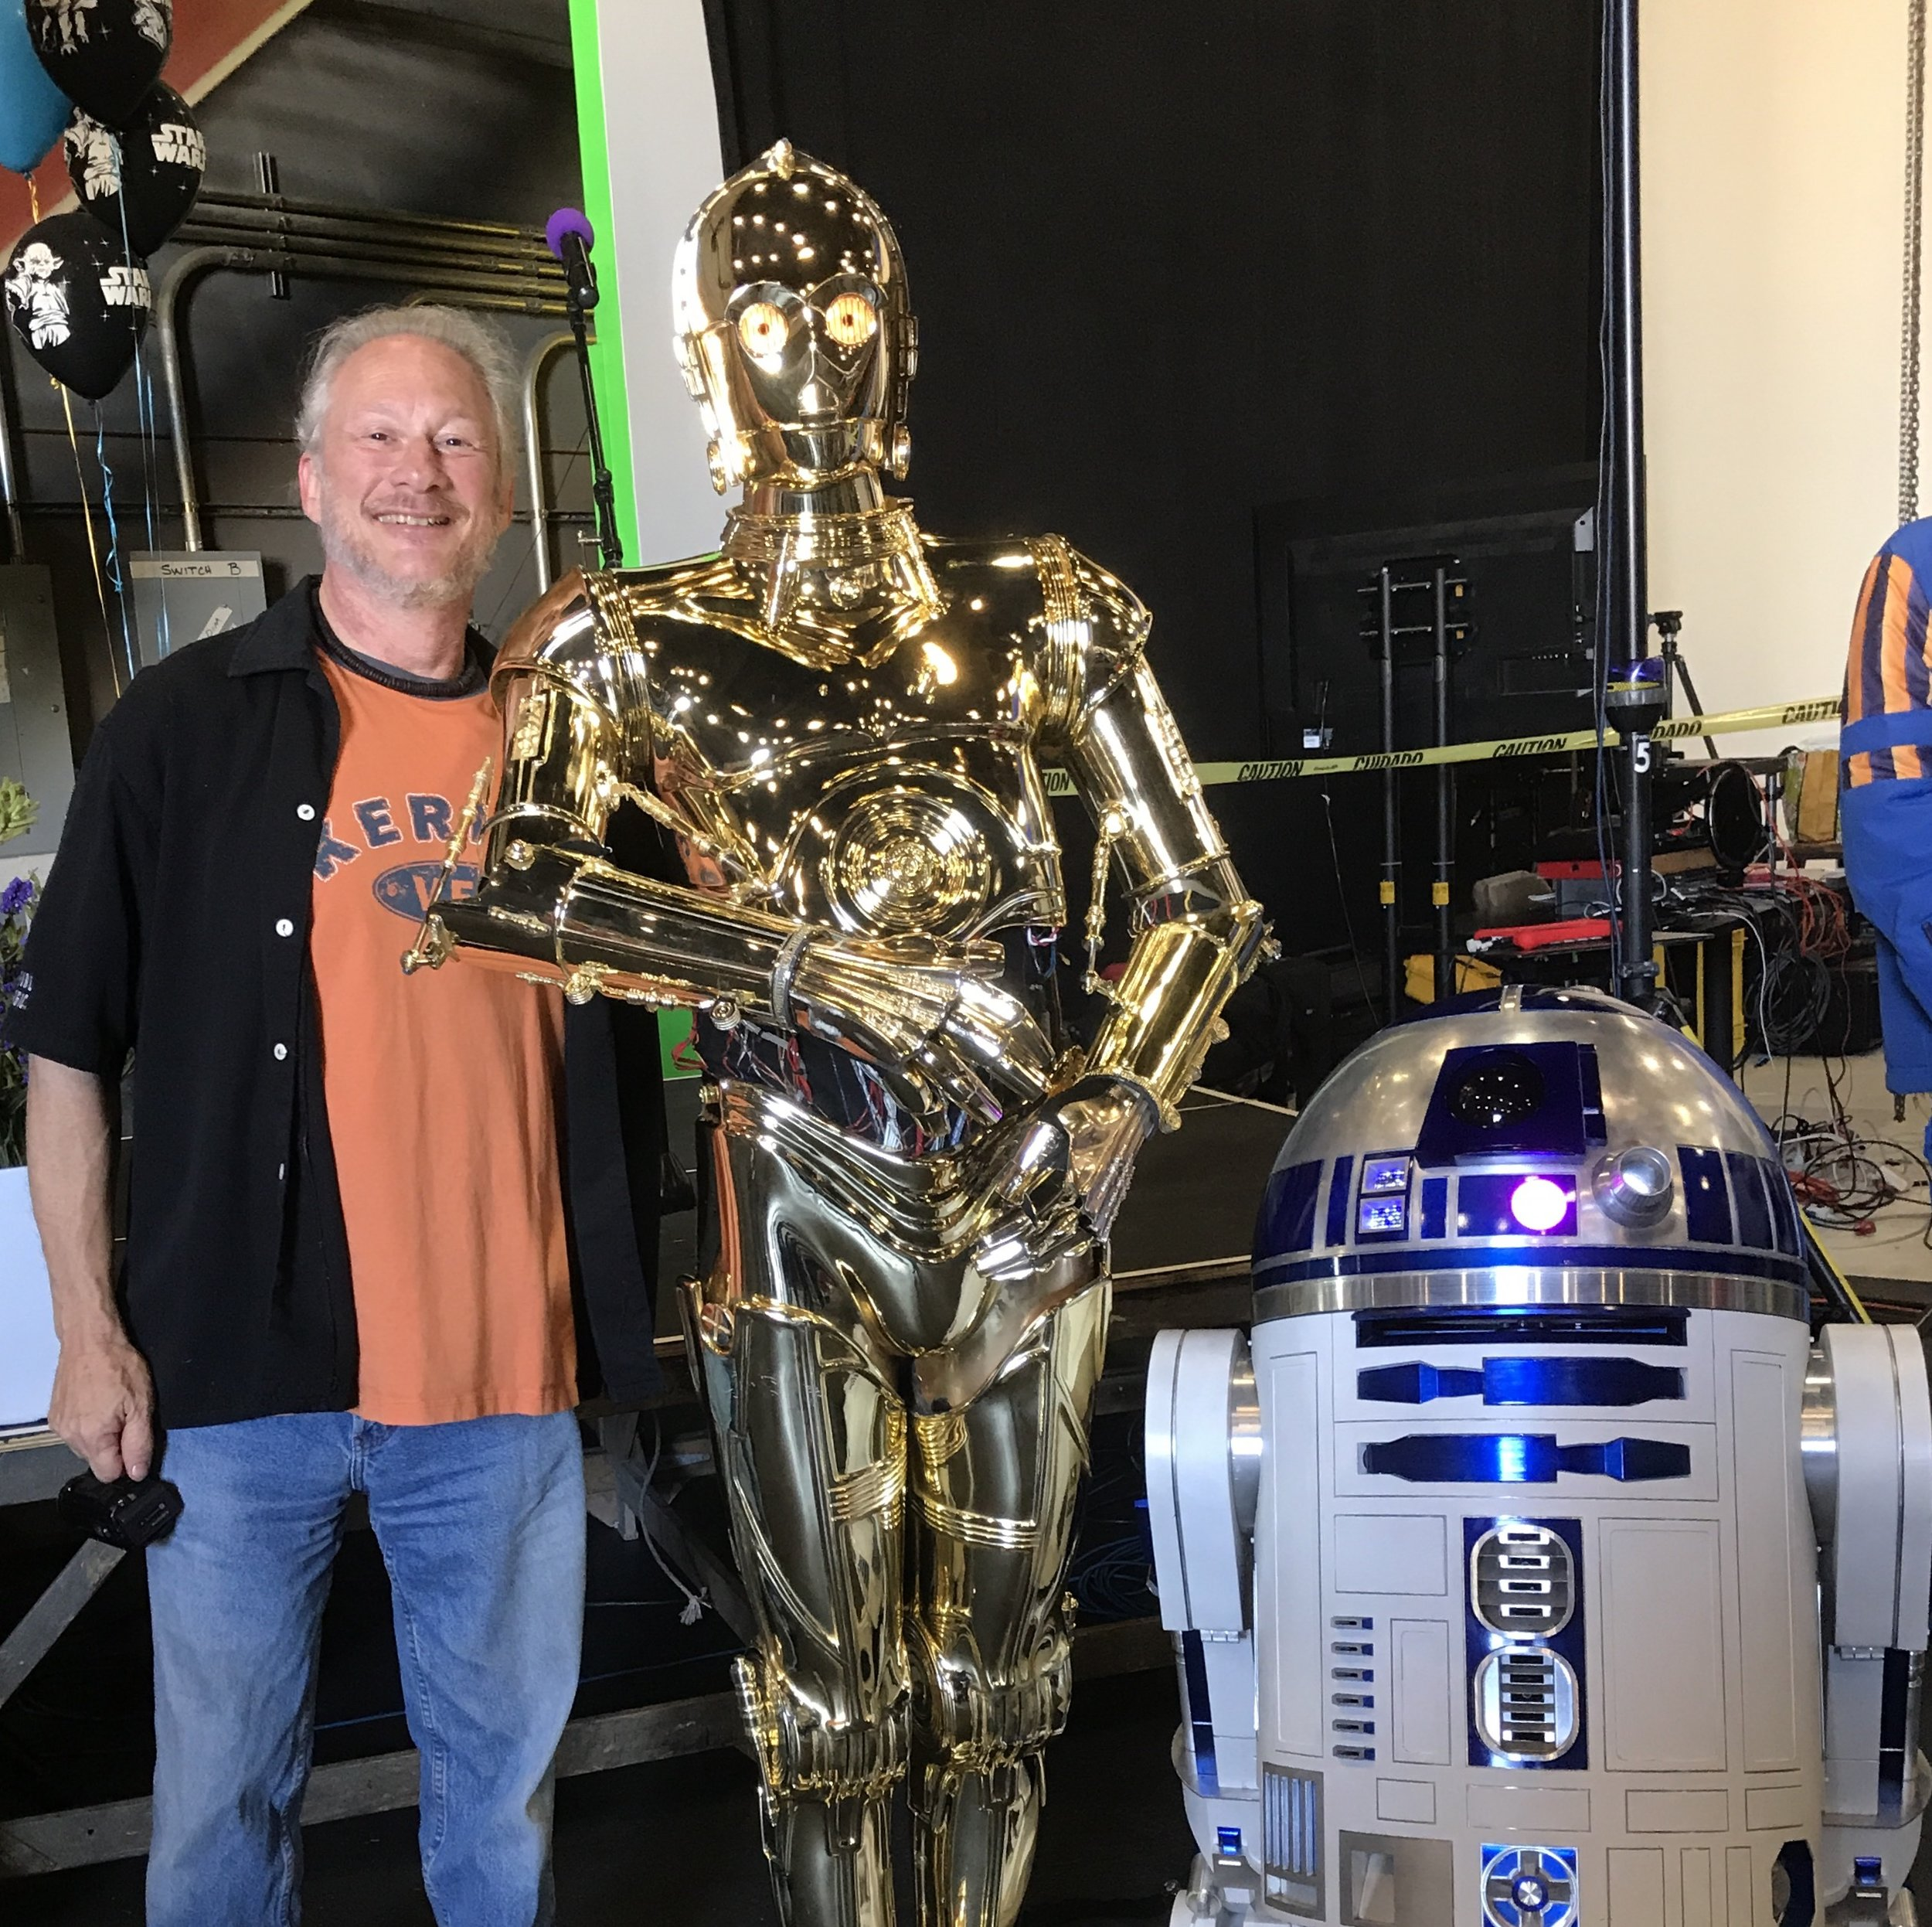 Ed Kramer with droids